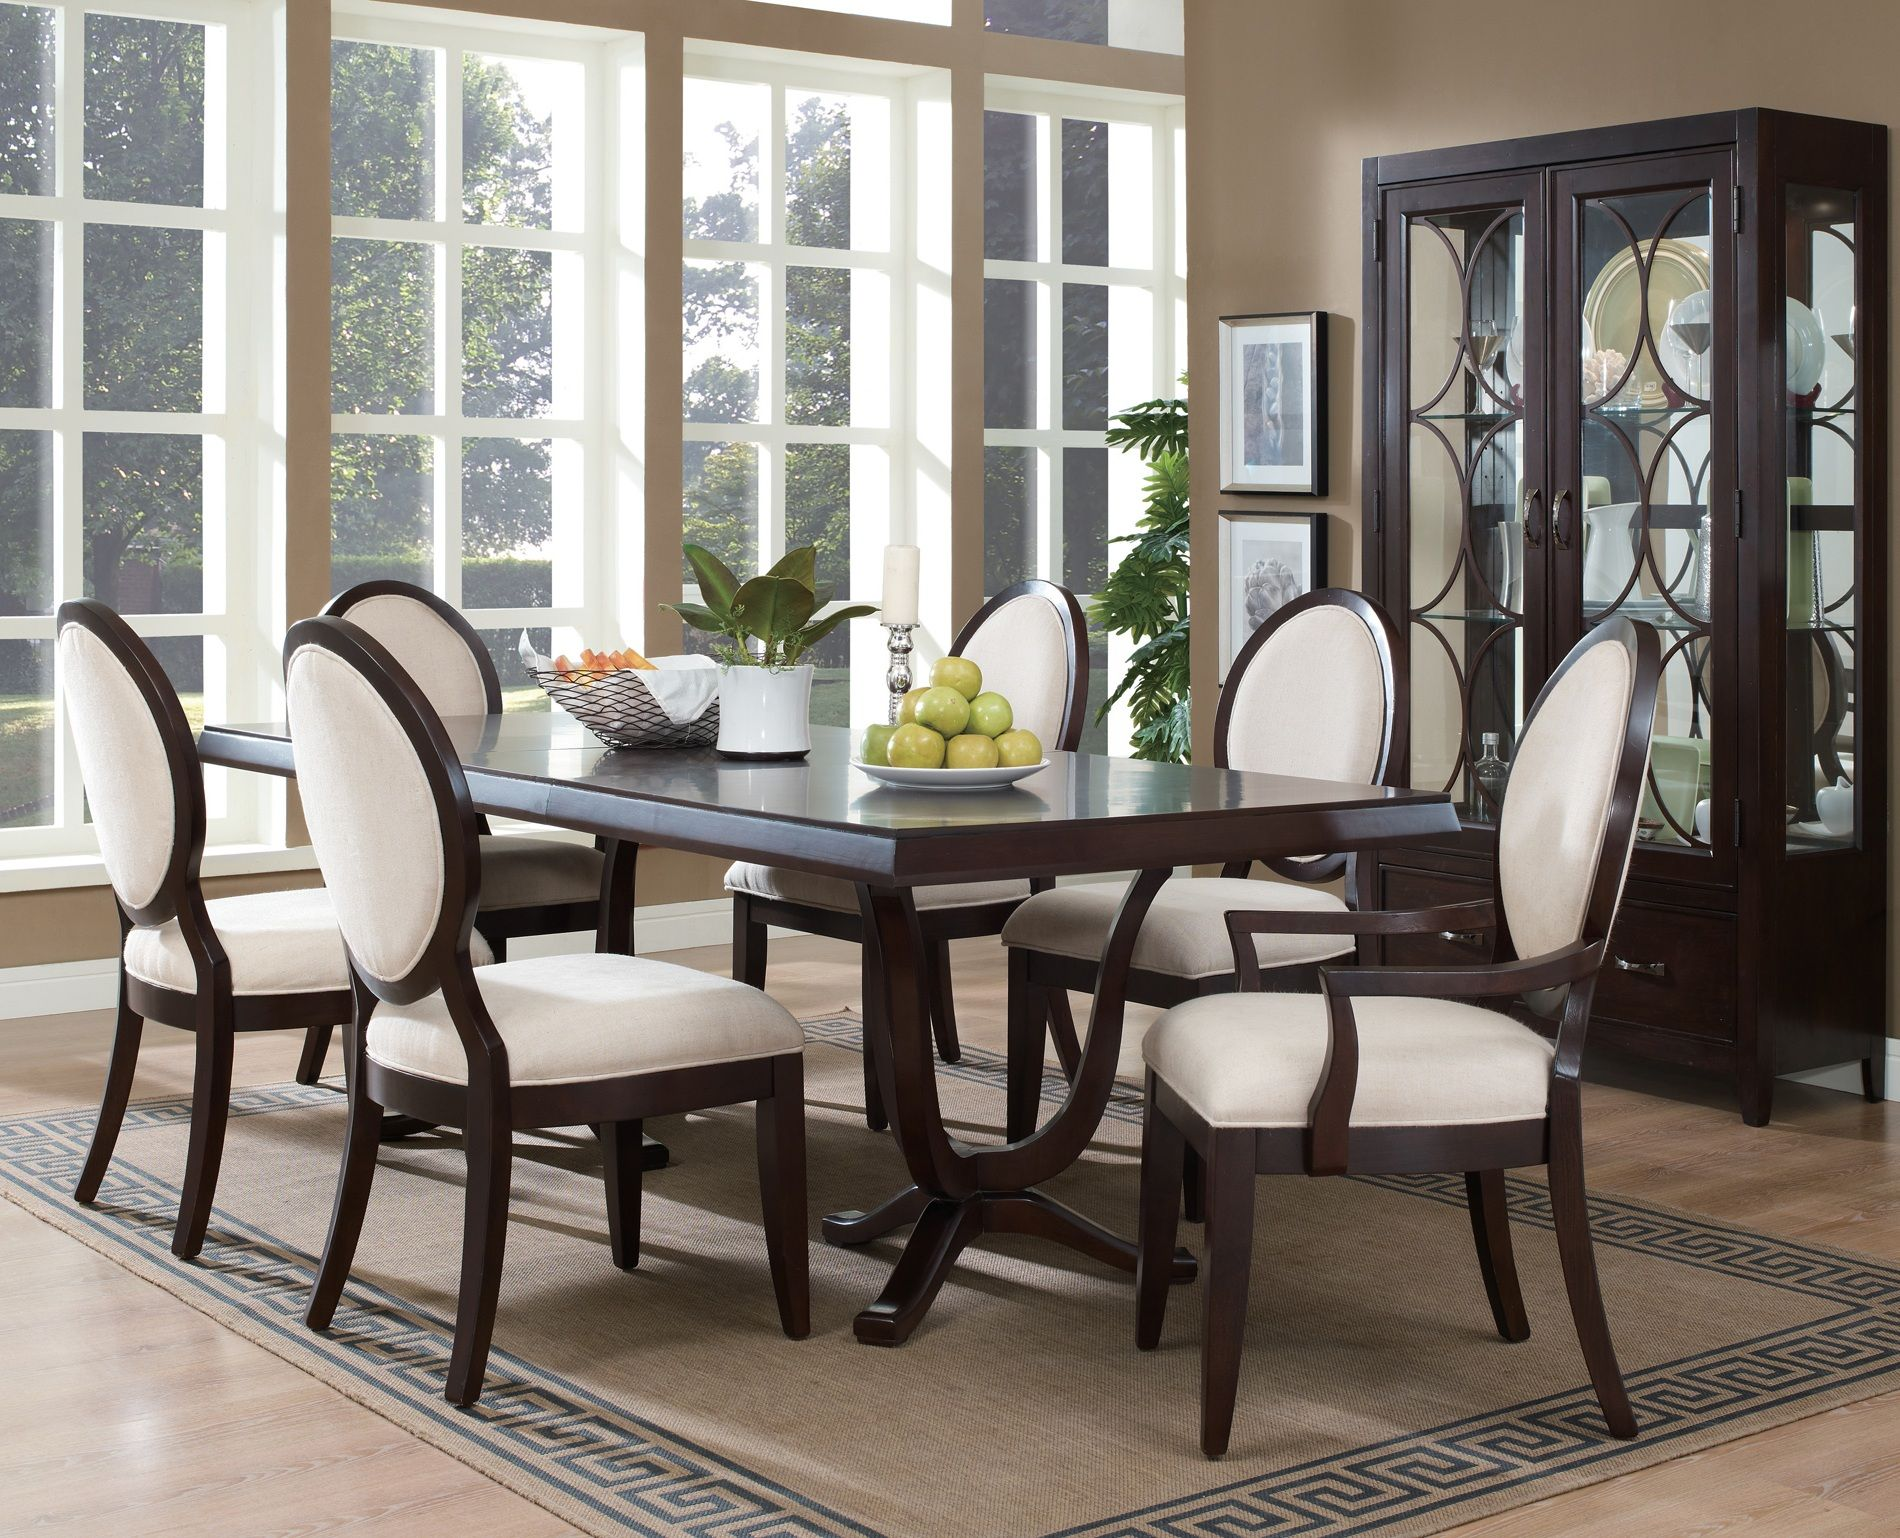 Dining Room Modern Sets Design With For Six People Wood Table And Comfy Chair